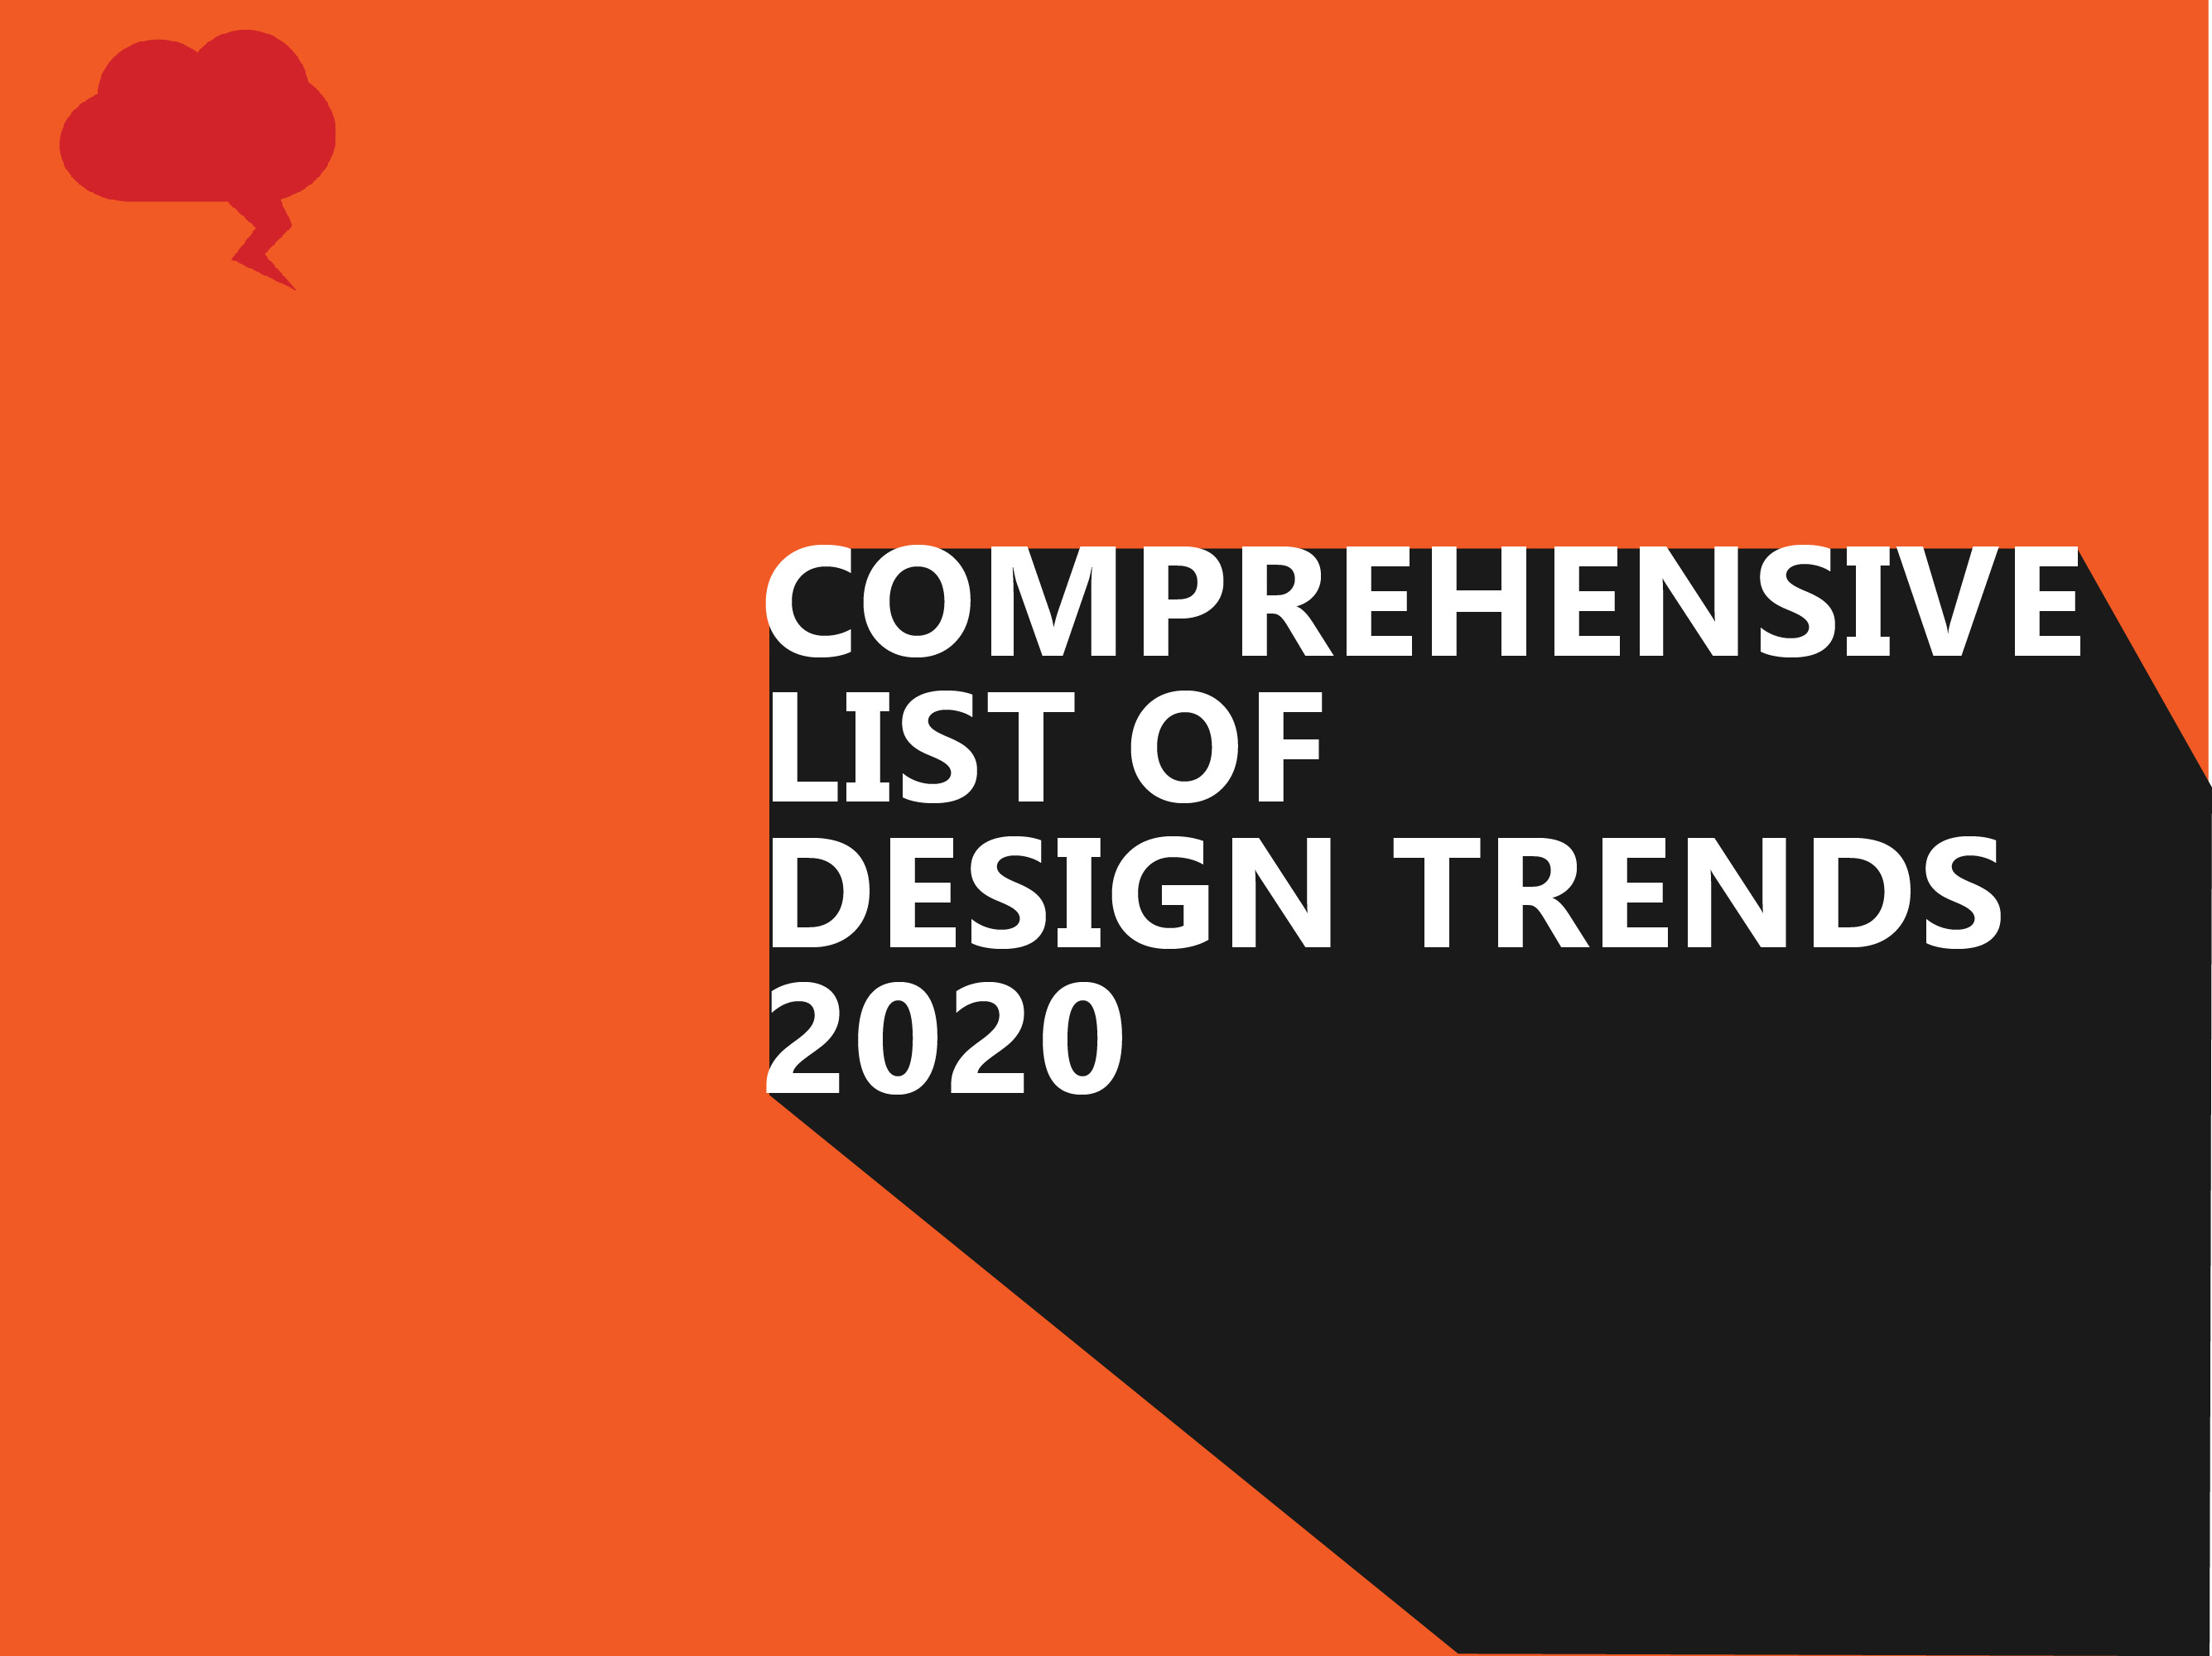 comprehensive list of design trends 2020